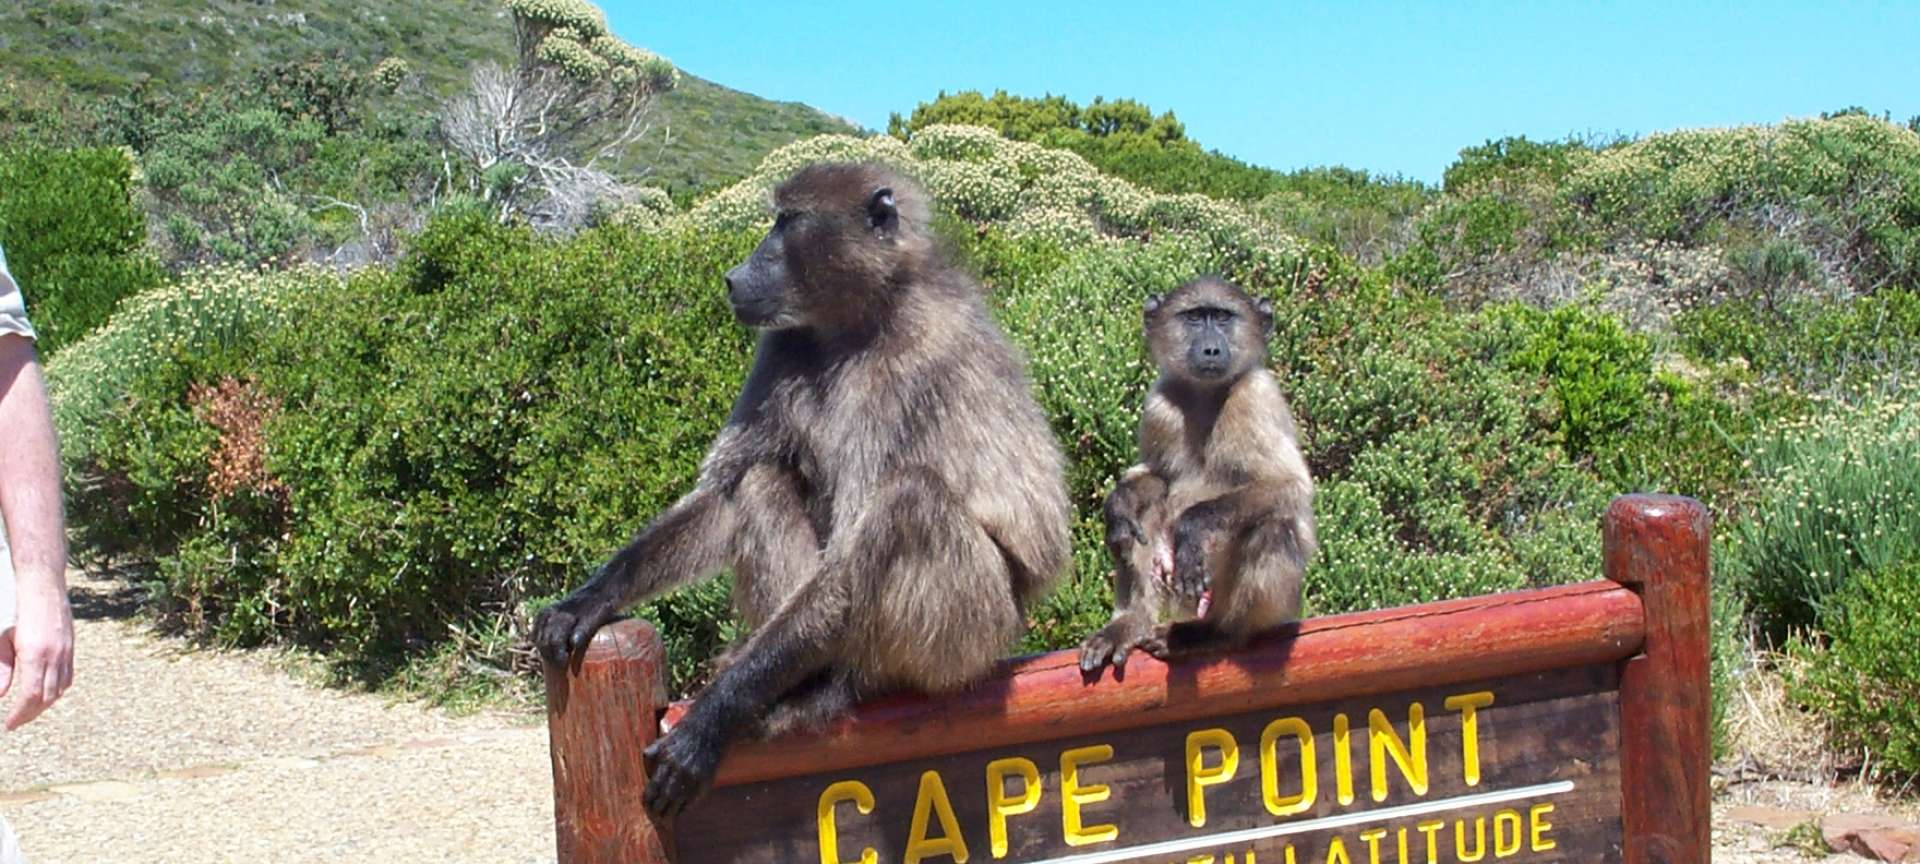 Spot Monkeys at the Cape Point, South Africa